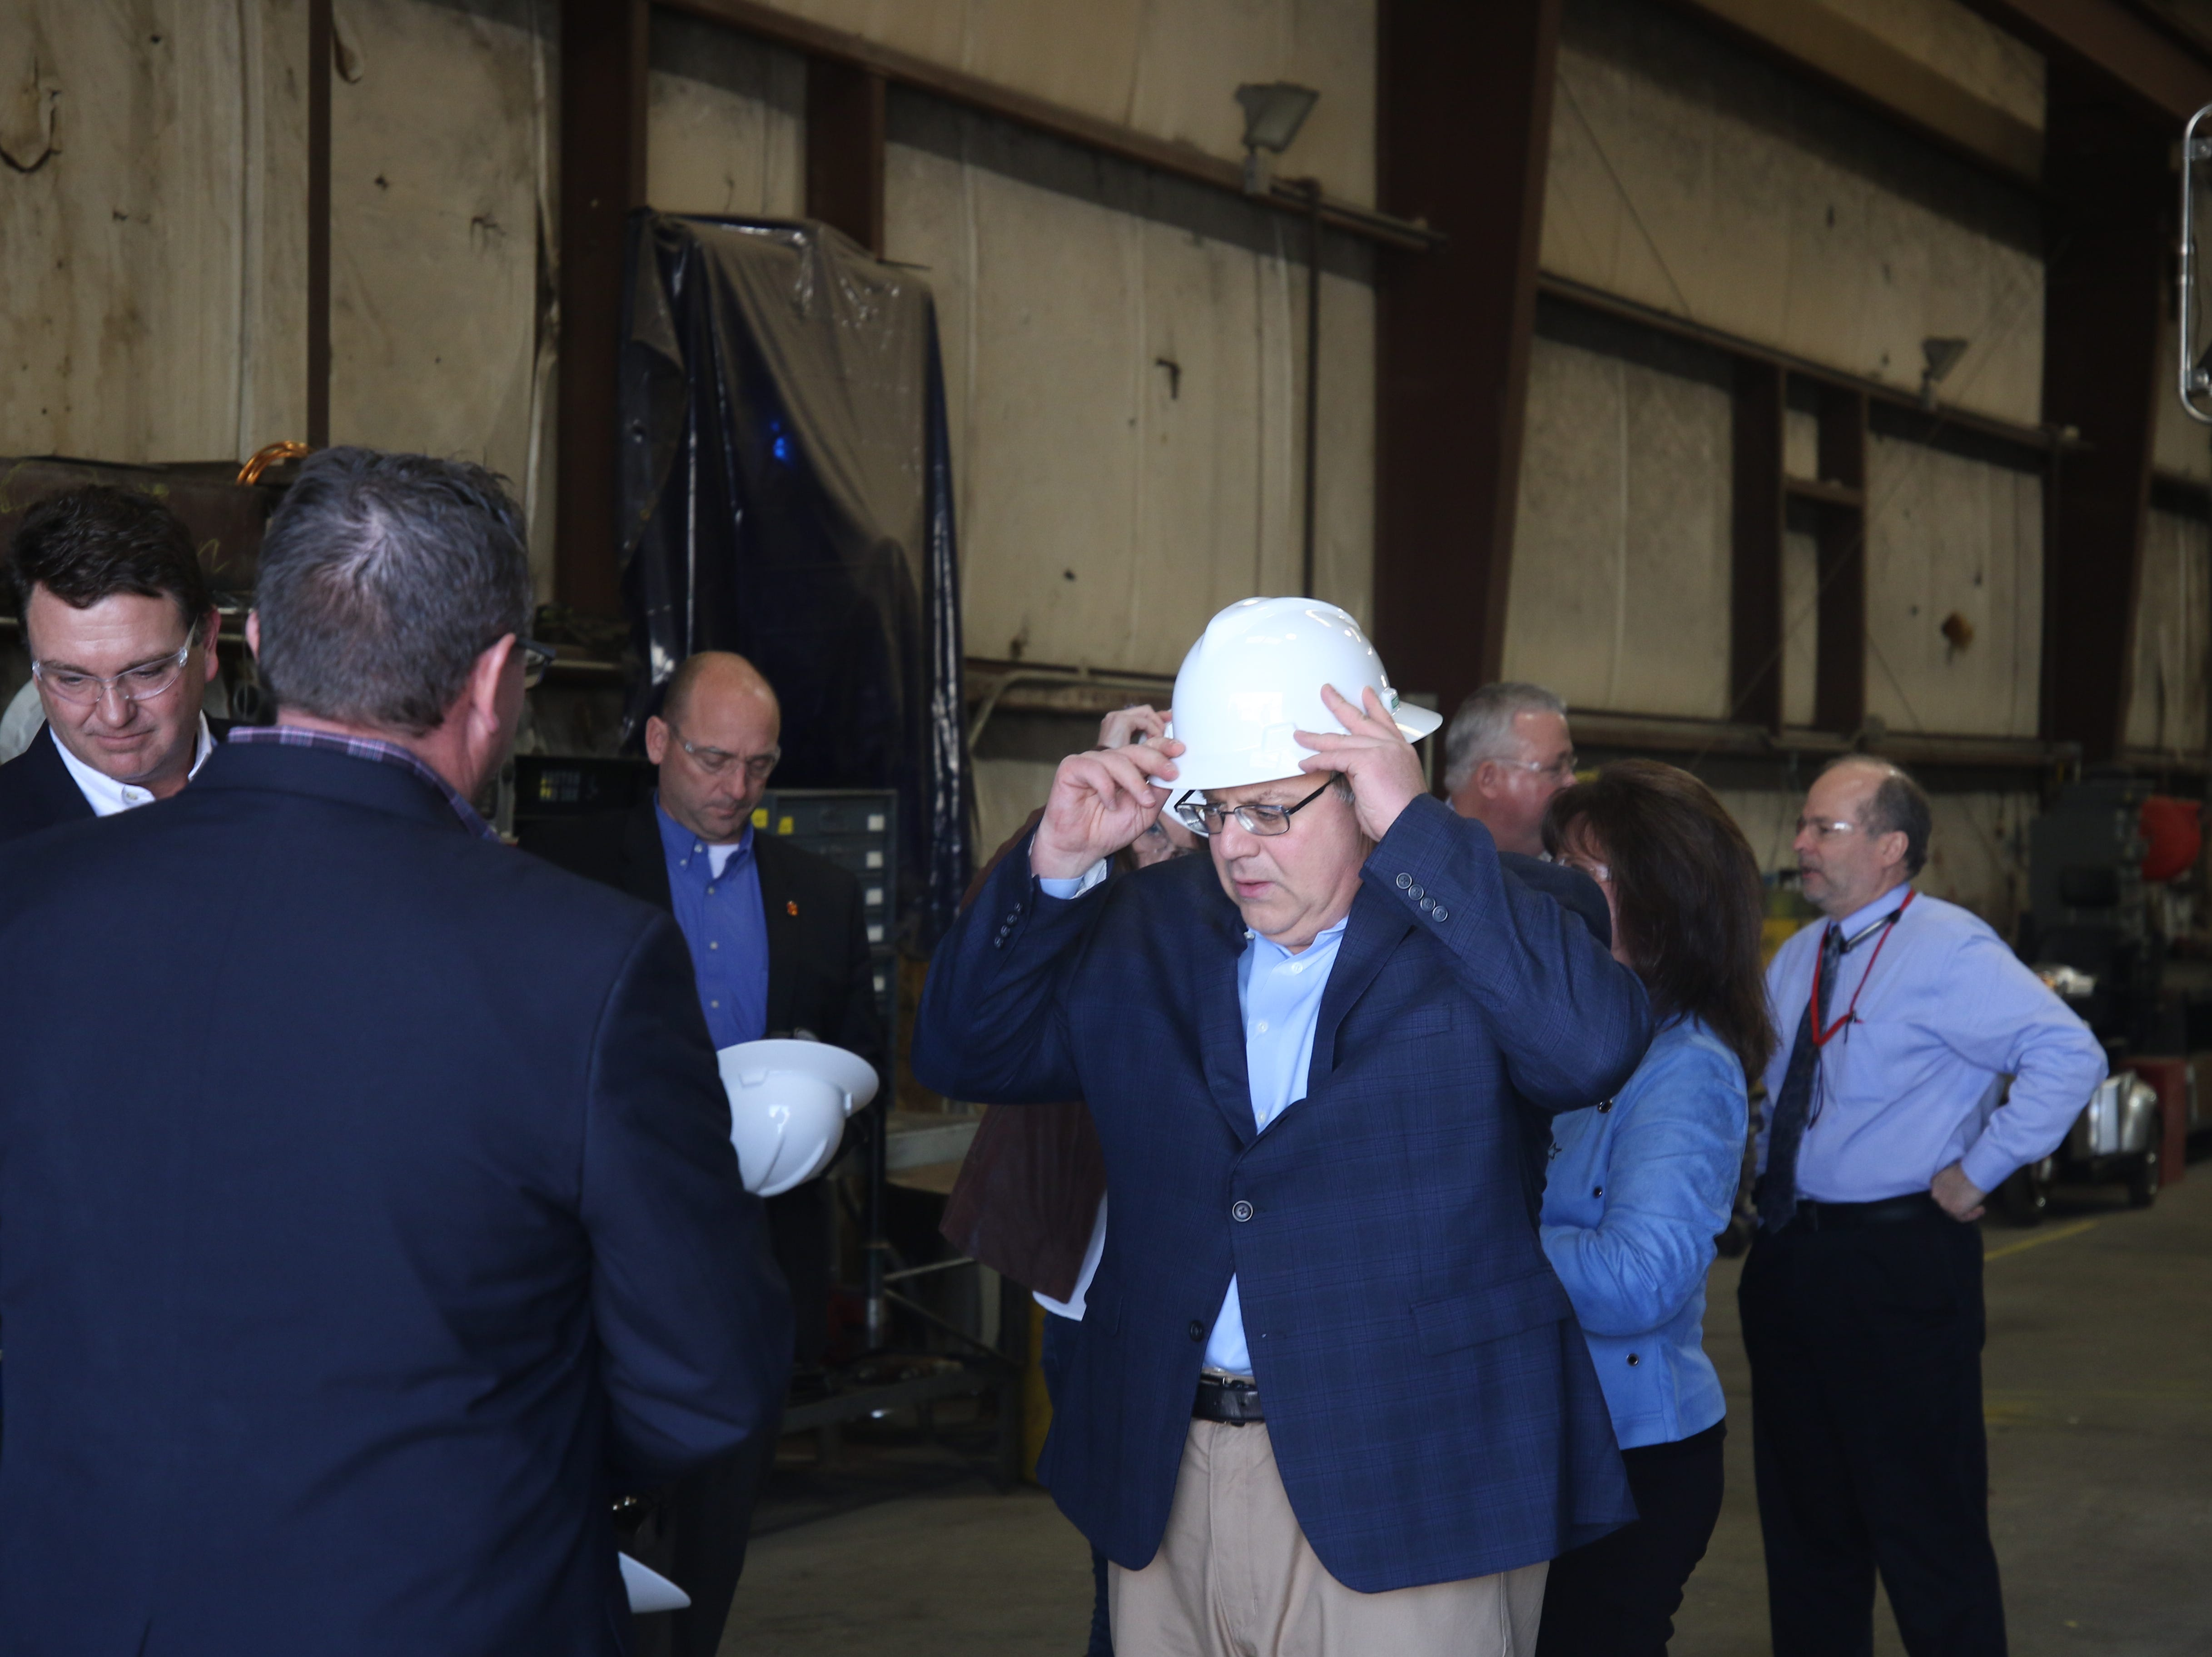 Acting U.S. Secretary of the Interior David Bernhardt puts on a hard hat before a tour of Watson Hopper, Feb. 6, 2019 in Hobbs.